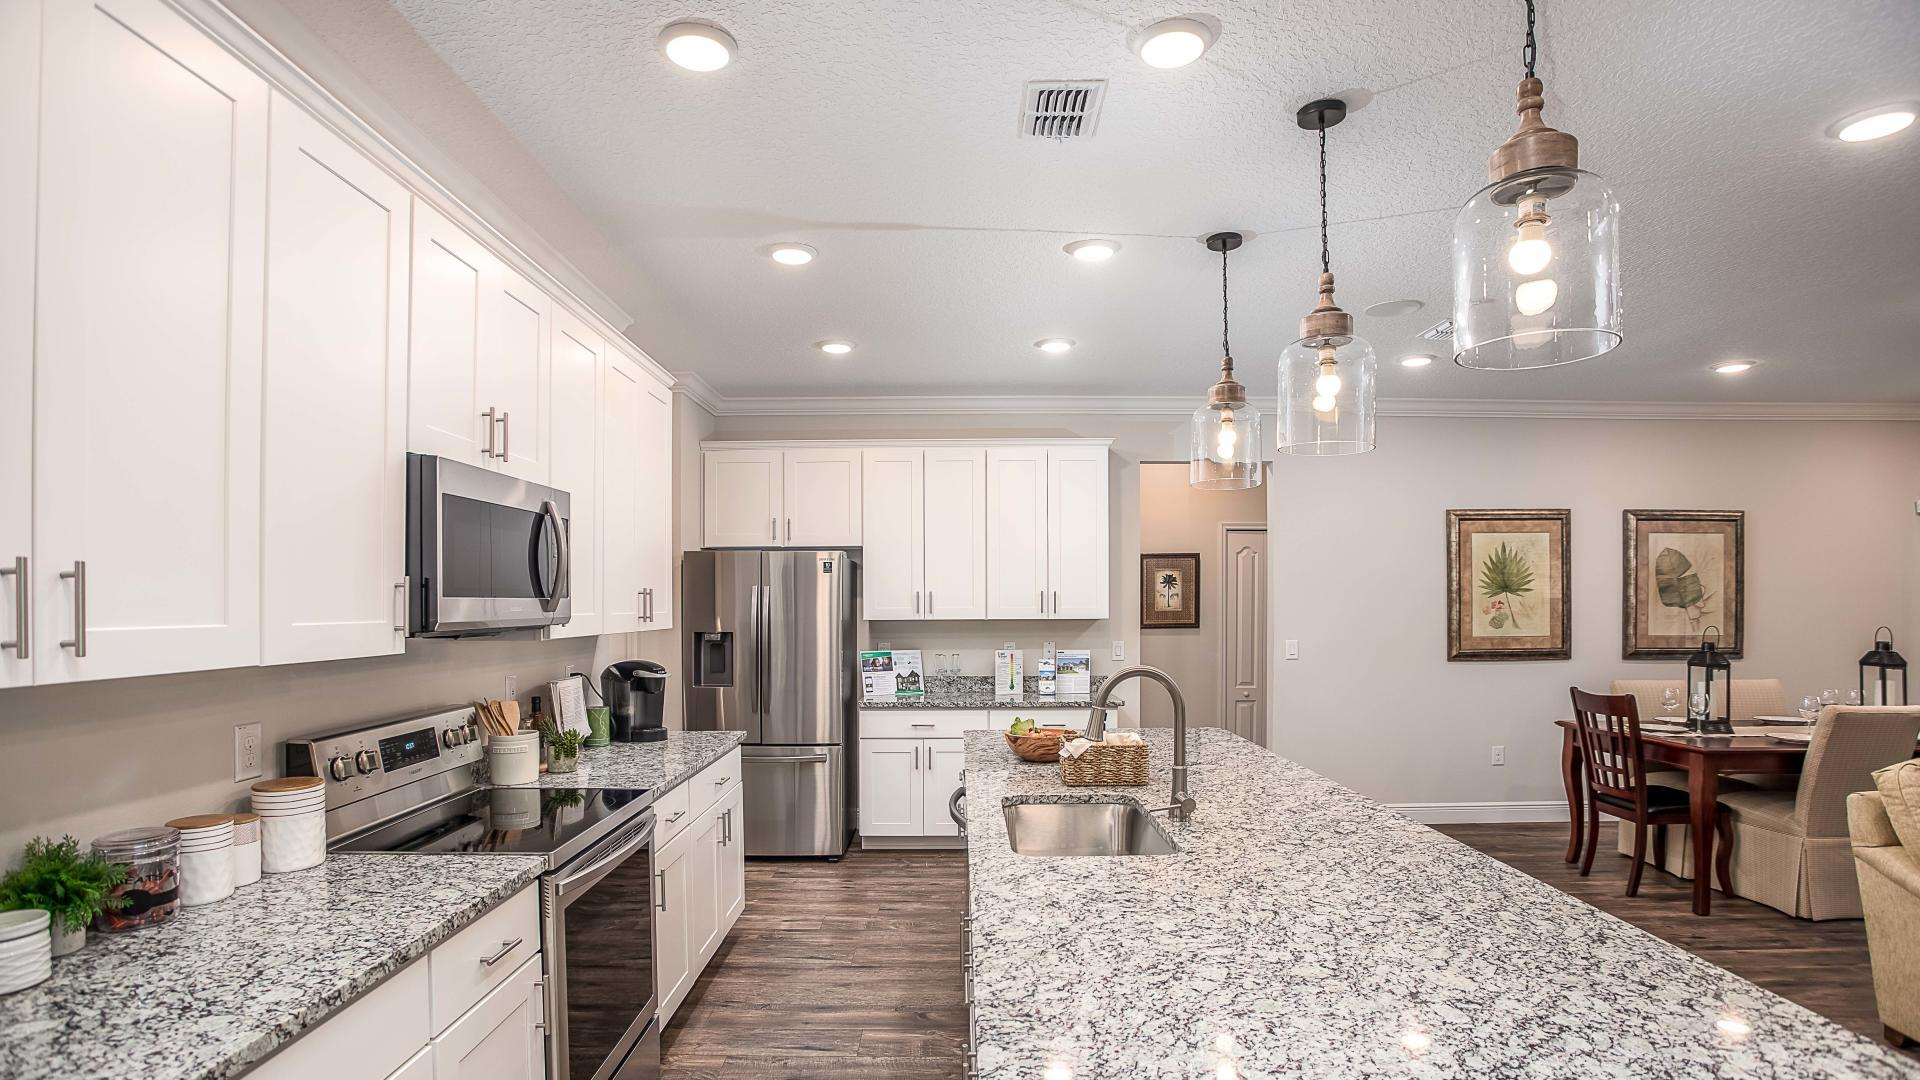 Kitchen featured in the Wilmington By Maronda Homes in Melbourne, FL